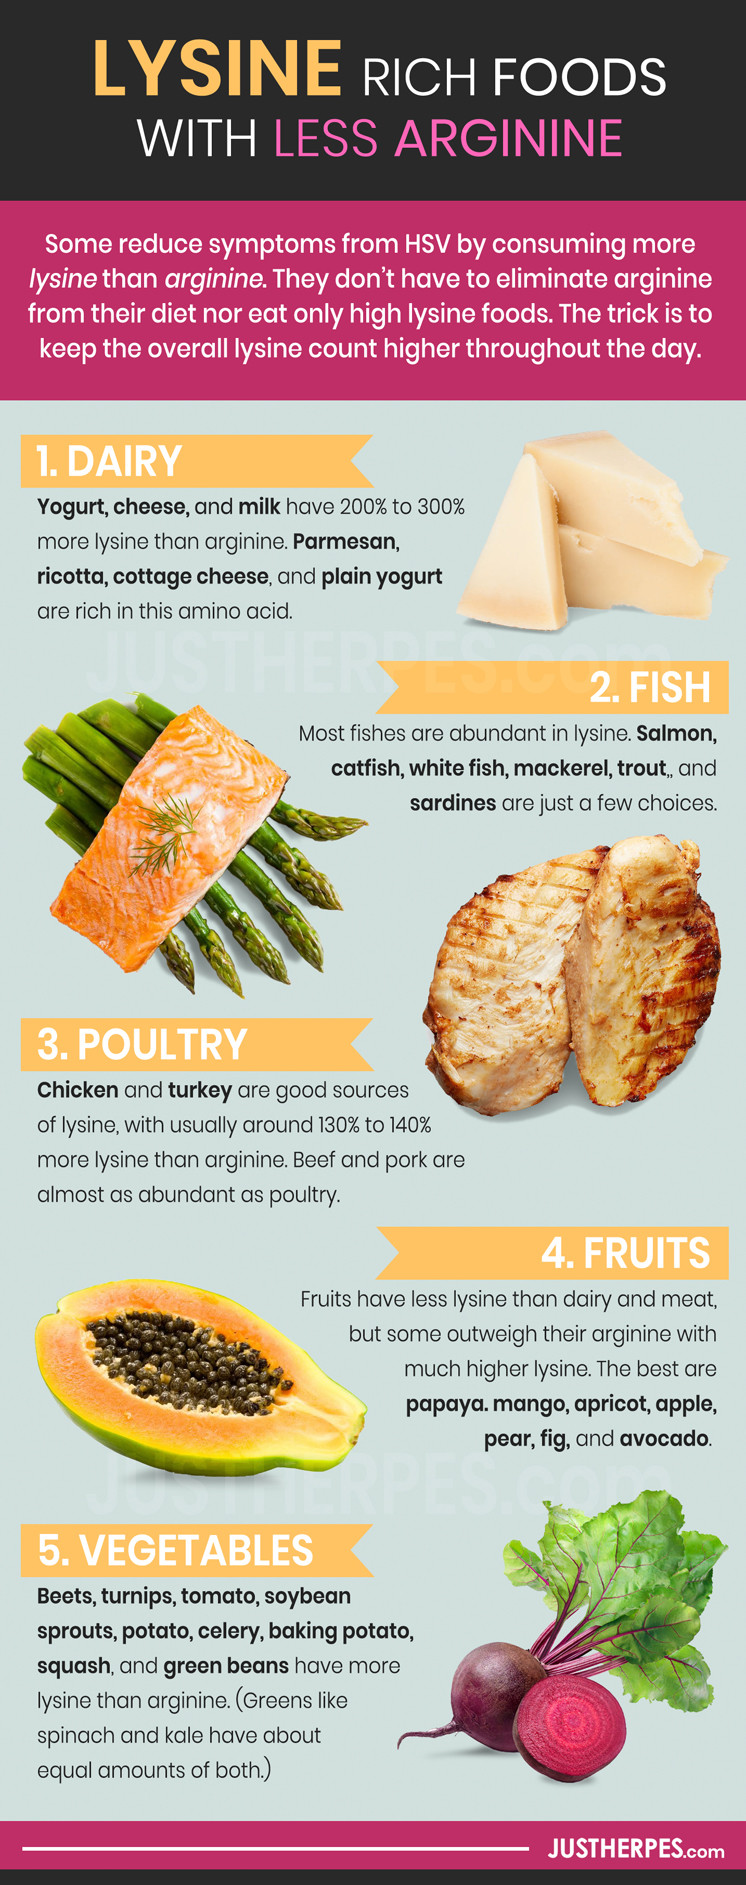 Lysine Rich Foods with Less Arginine Infographic